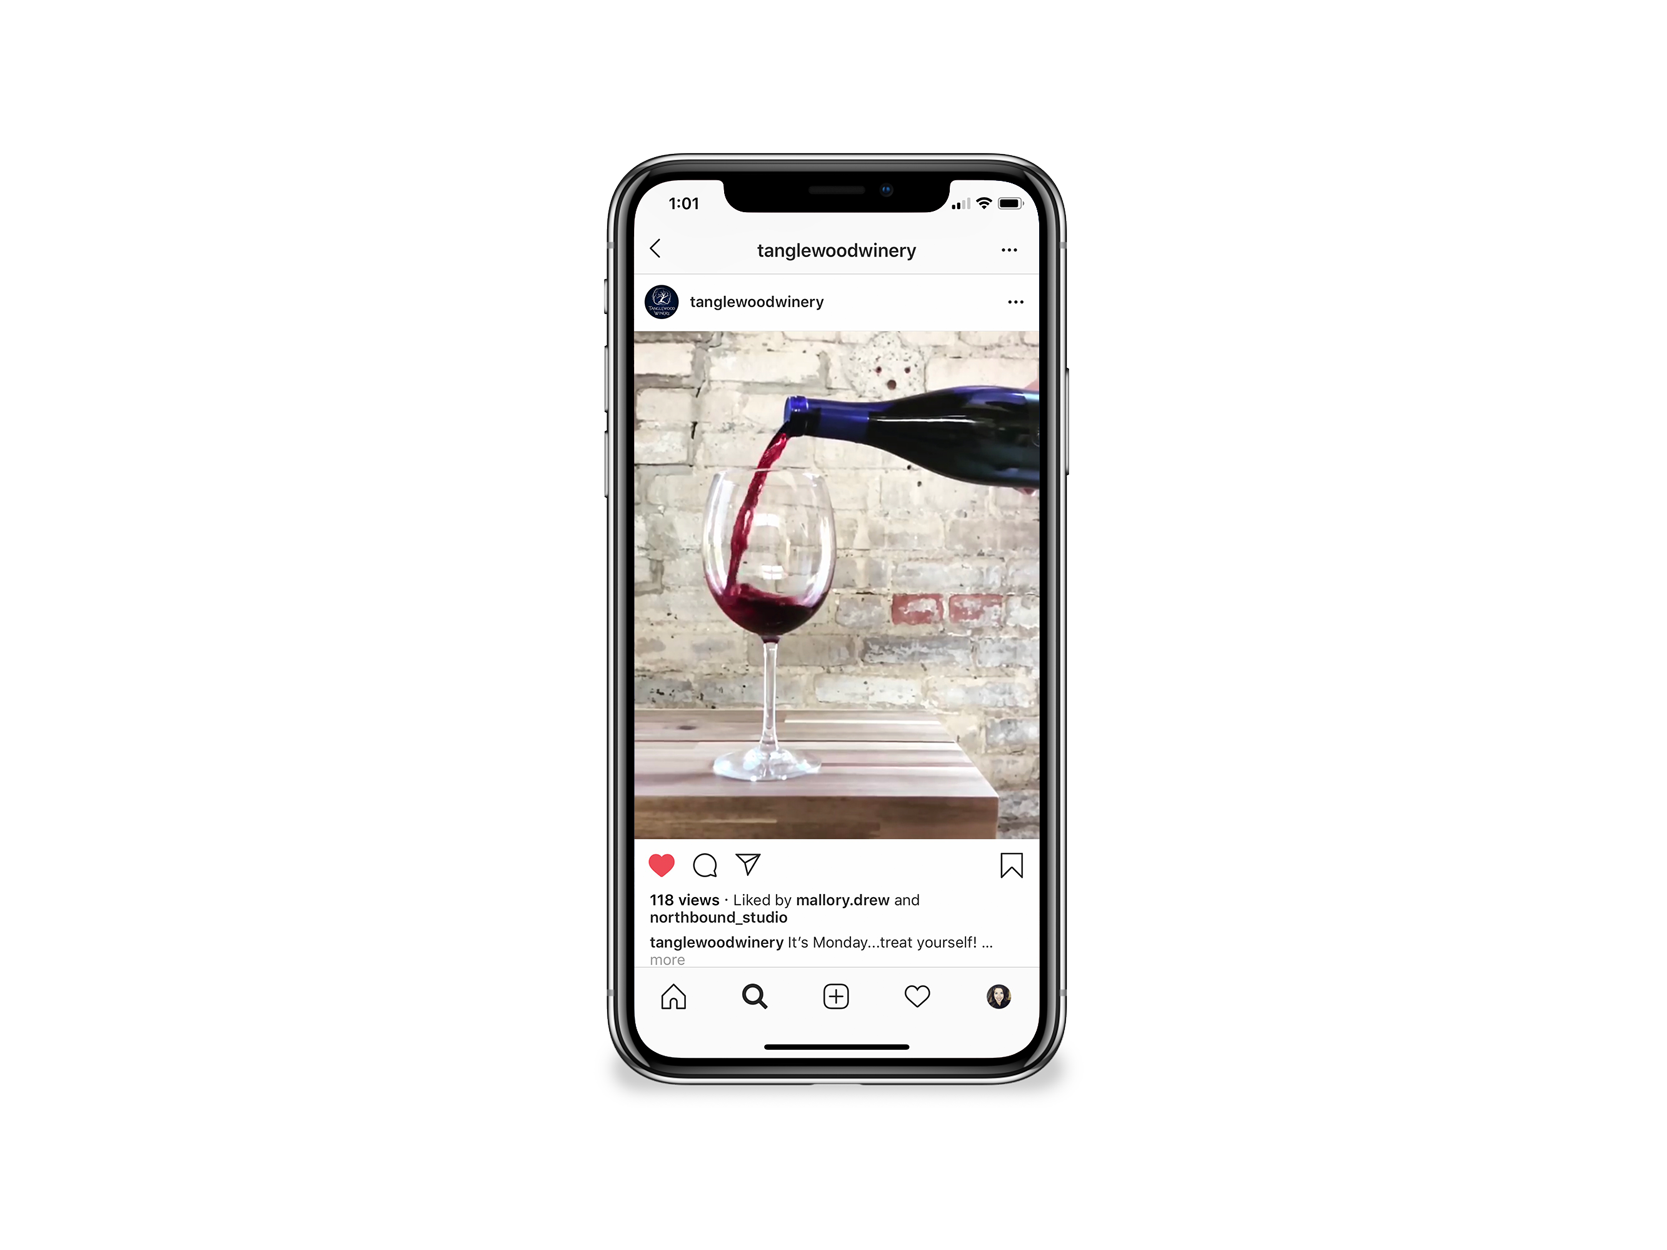 winery social media account with high-end wine photography